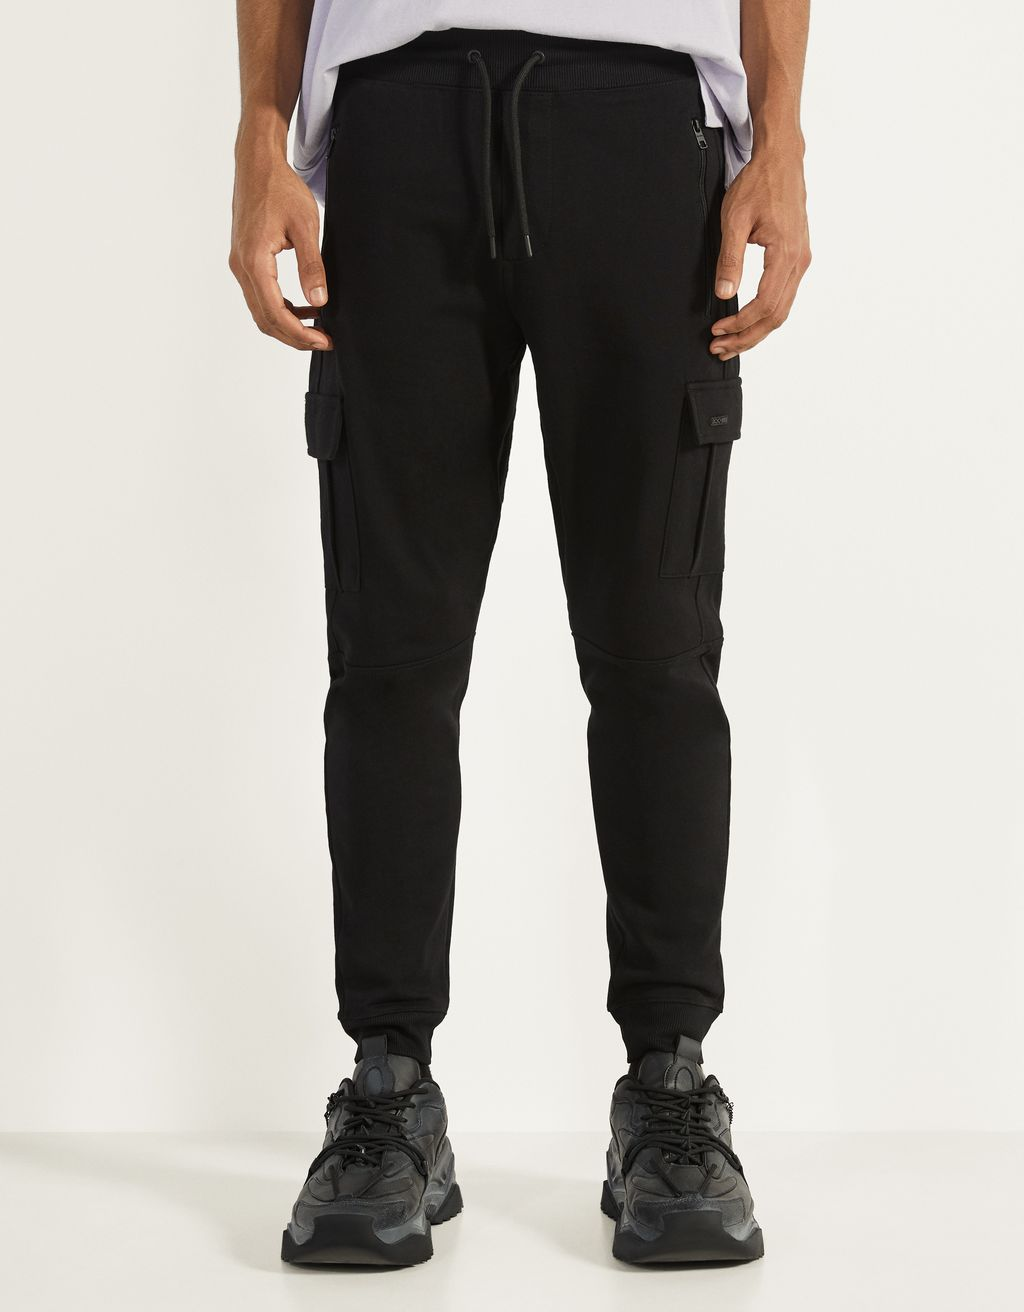 Plush cargo jogging trousers